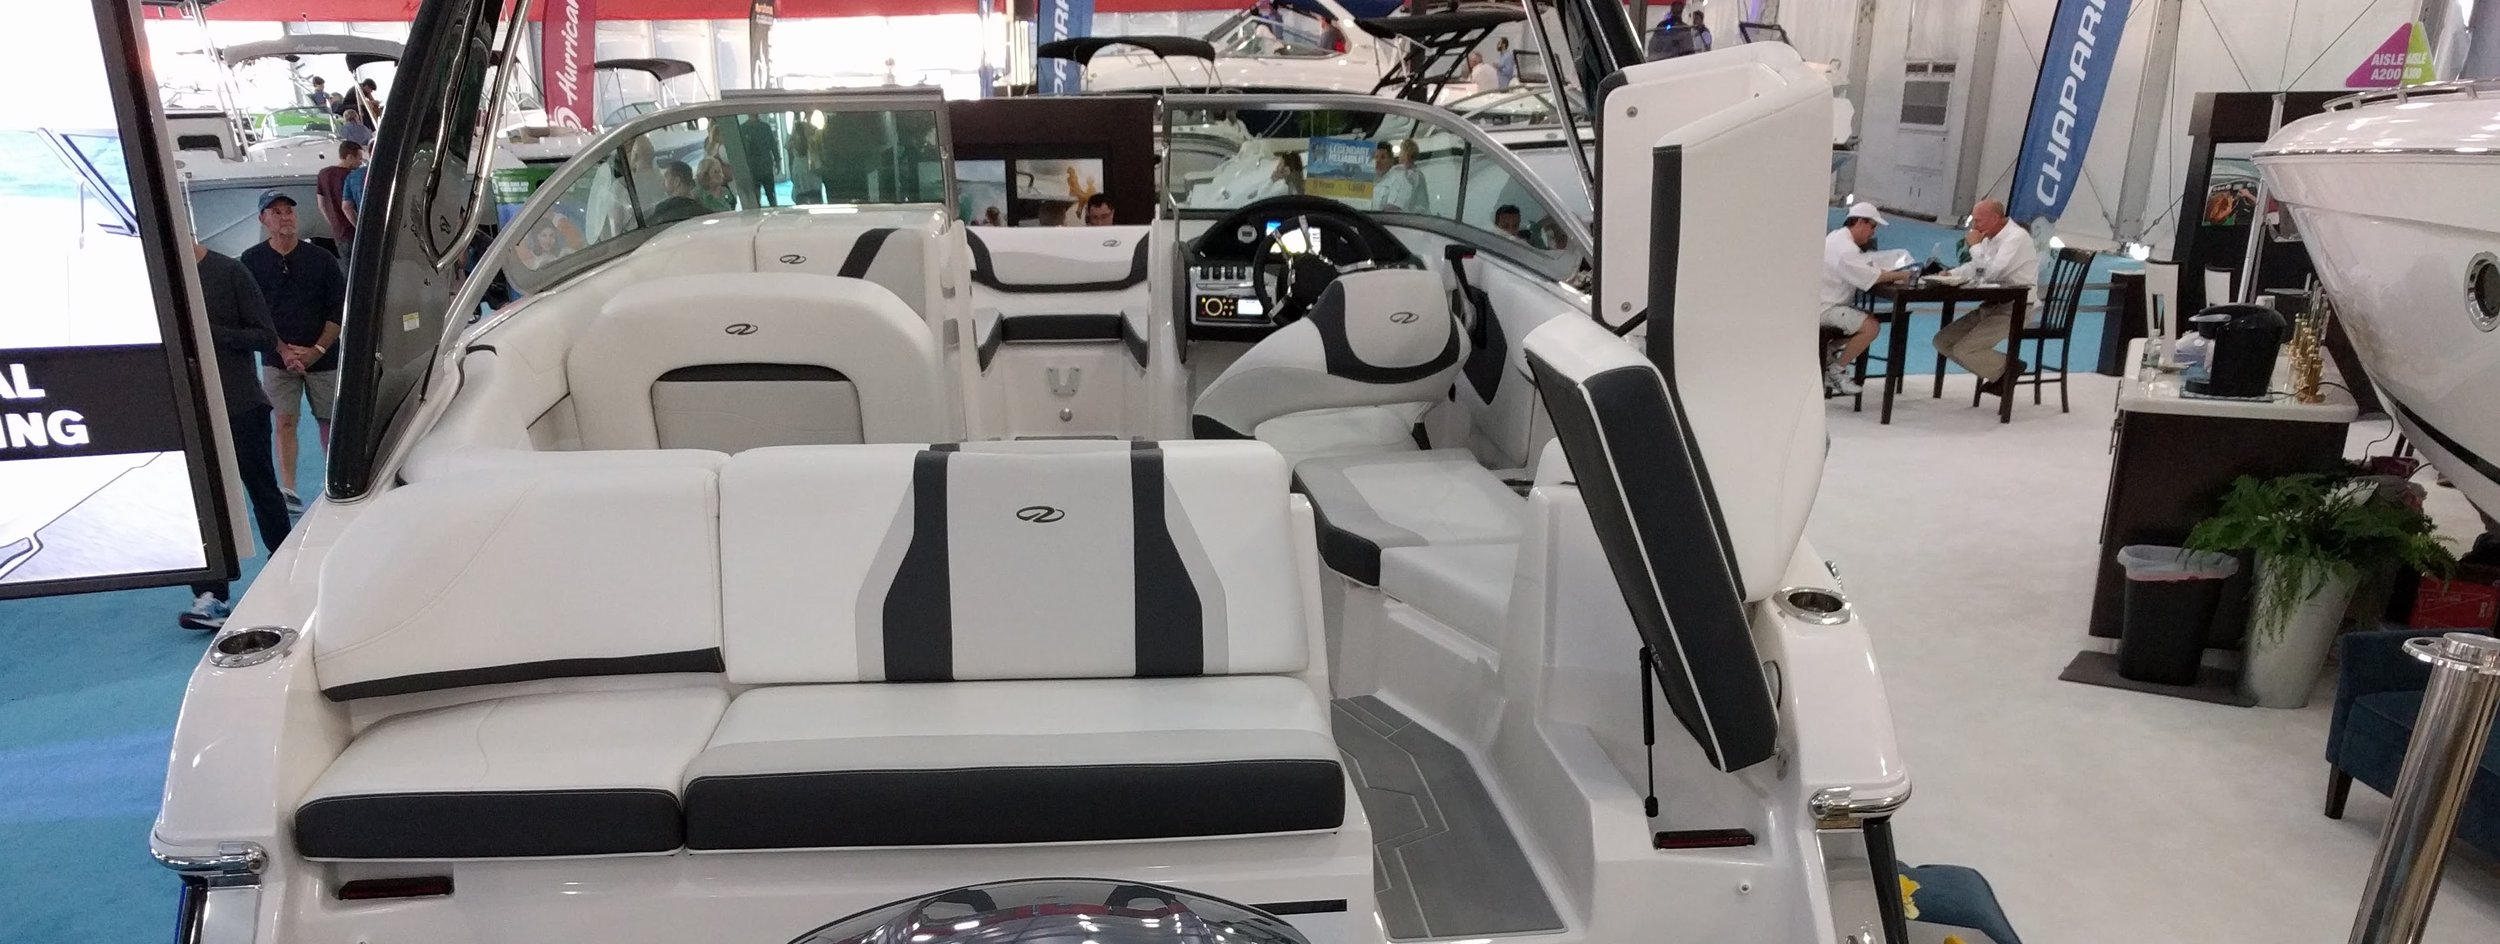 More room but at what cost? Bowriders are categorically less safe than closed bow boats but they remain one of most popular styles.